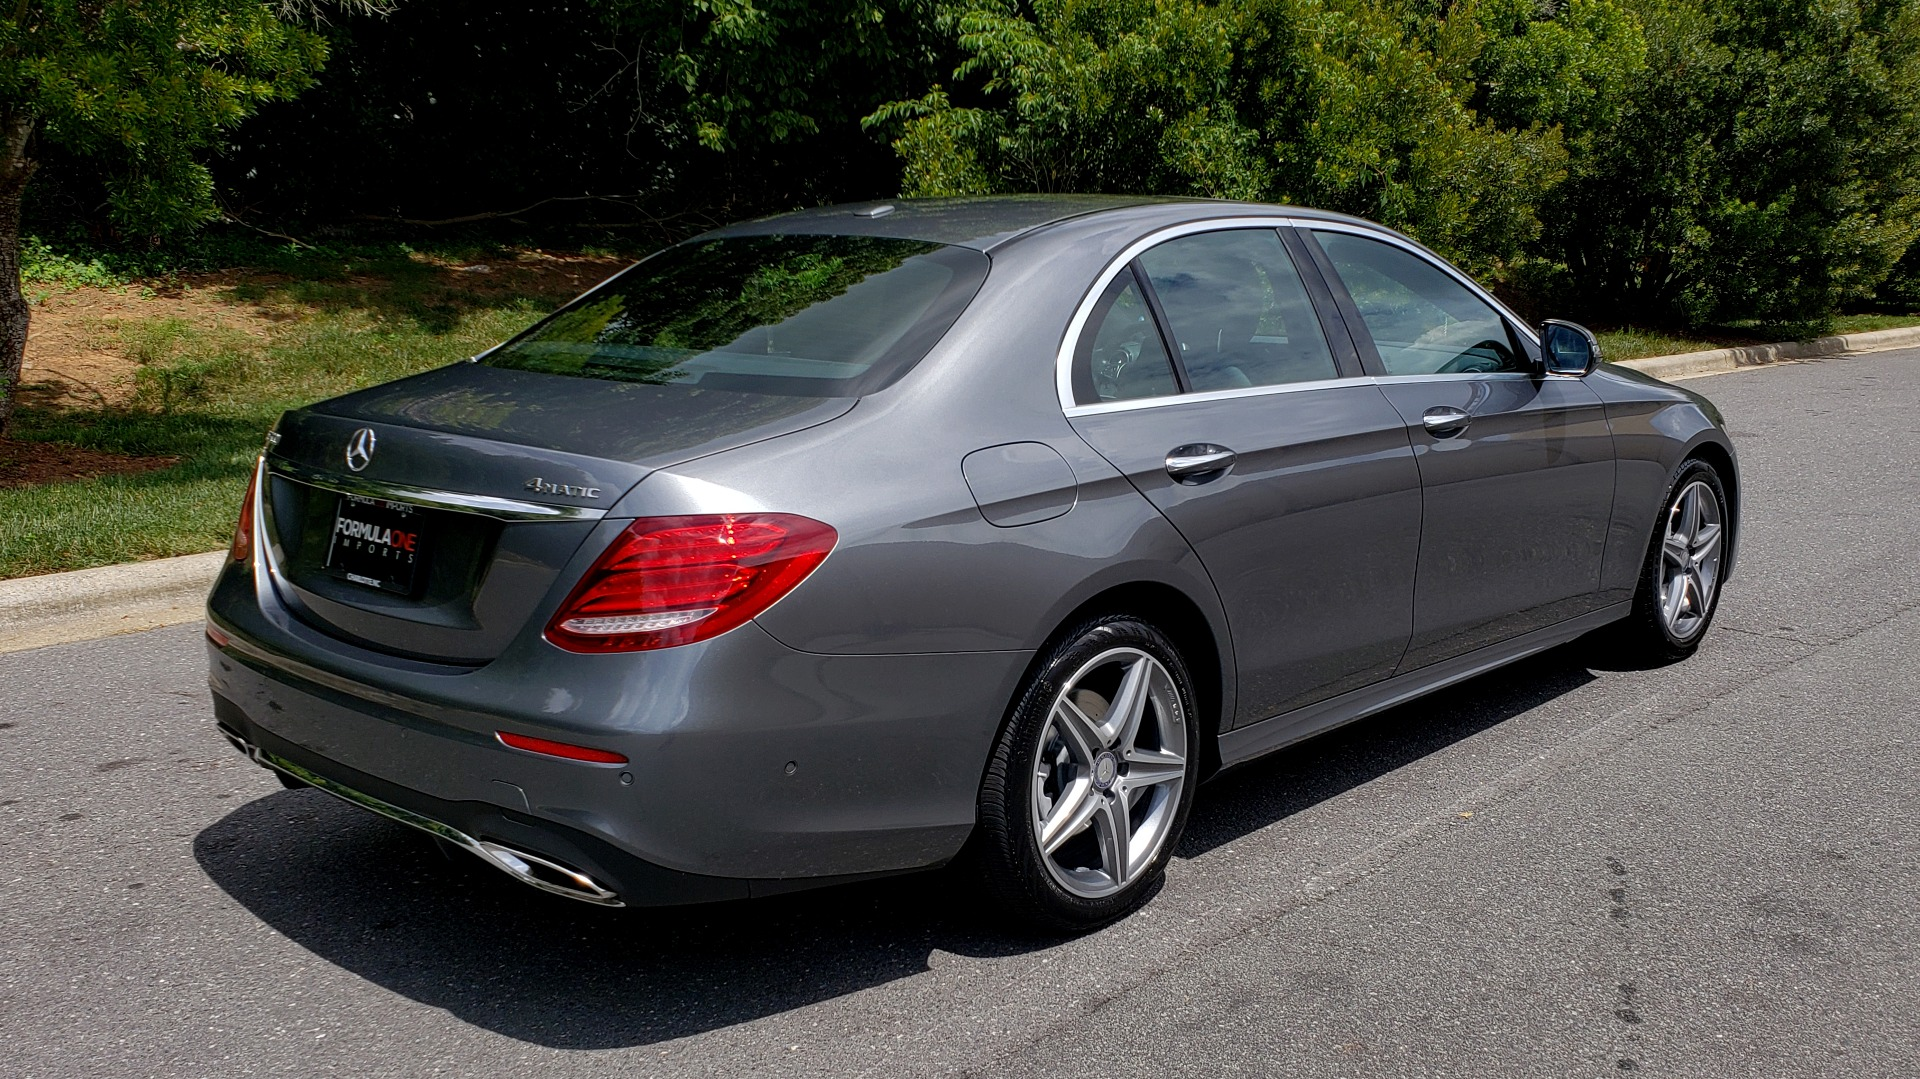 Used 2017 Mercedes-Benz E-CLASS E 300 SPORT 4MATIC / PREM PKG / NAV / SUNROOF / BURMESTER SND / REARVIEW for sale Sold at Formula Imports in Charlotte NC 28227 6